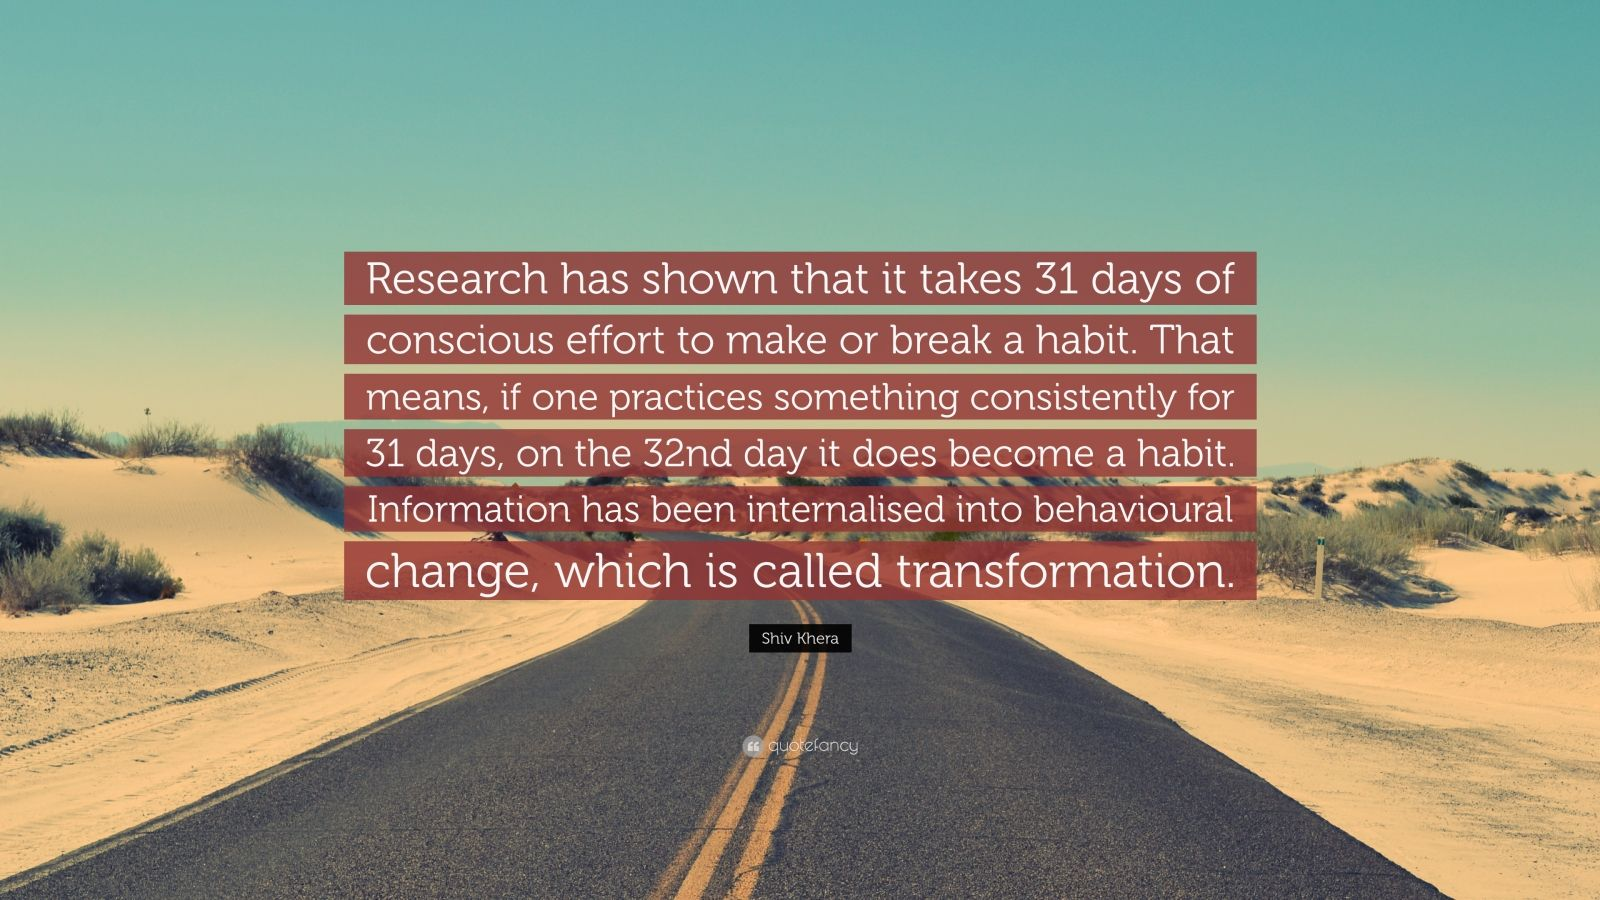 """Shiv Khera Quote: """"Research has shown that it takes 31 days of conscious effort to make or break a habit. That means, if one practices something consistently for 31 days, on the 32nd day it does become a habit. Information has been internalised into behavioural change, which is called transformation."""""""